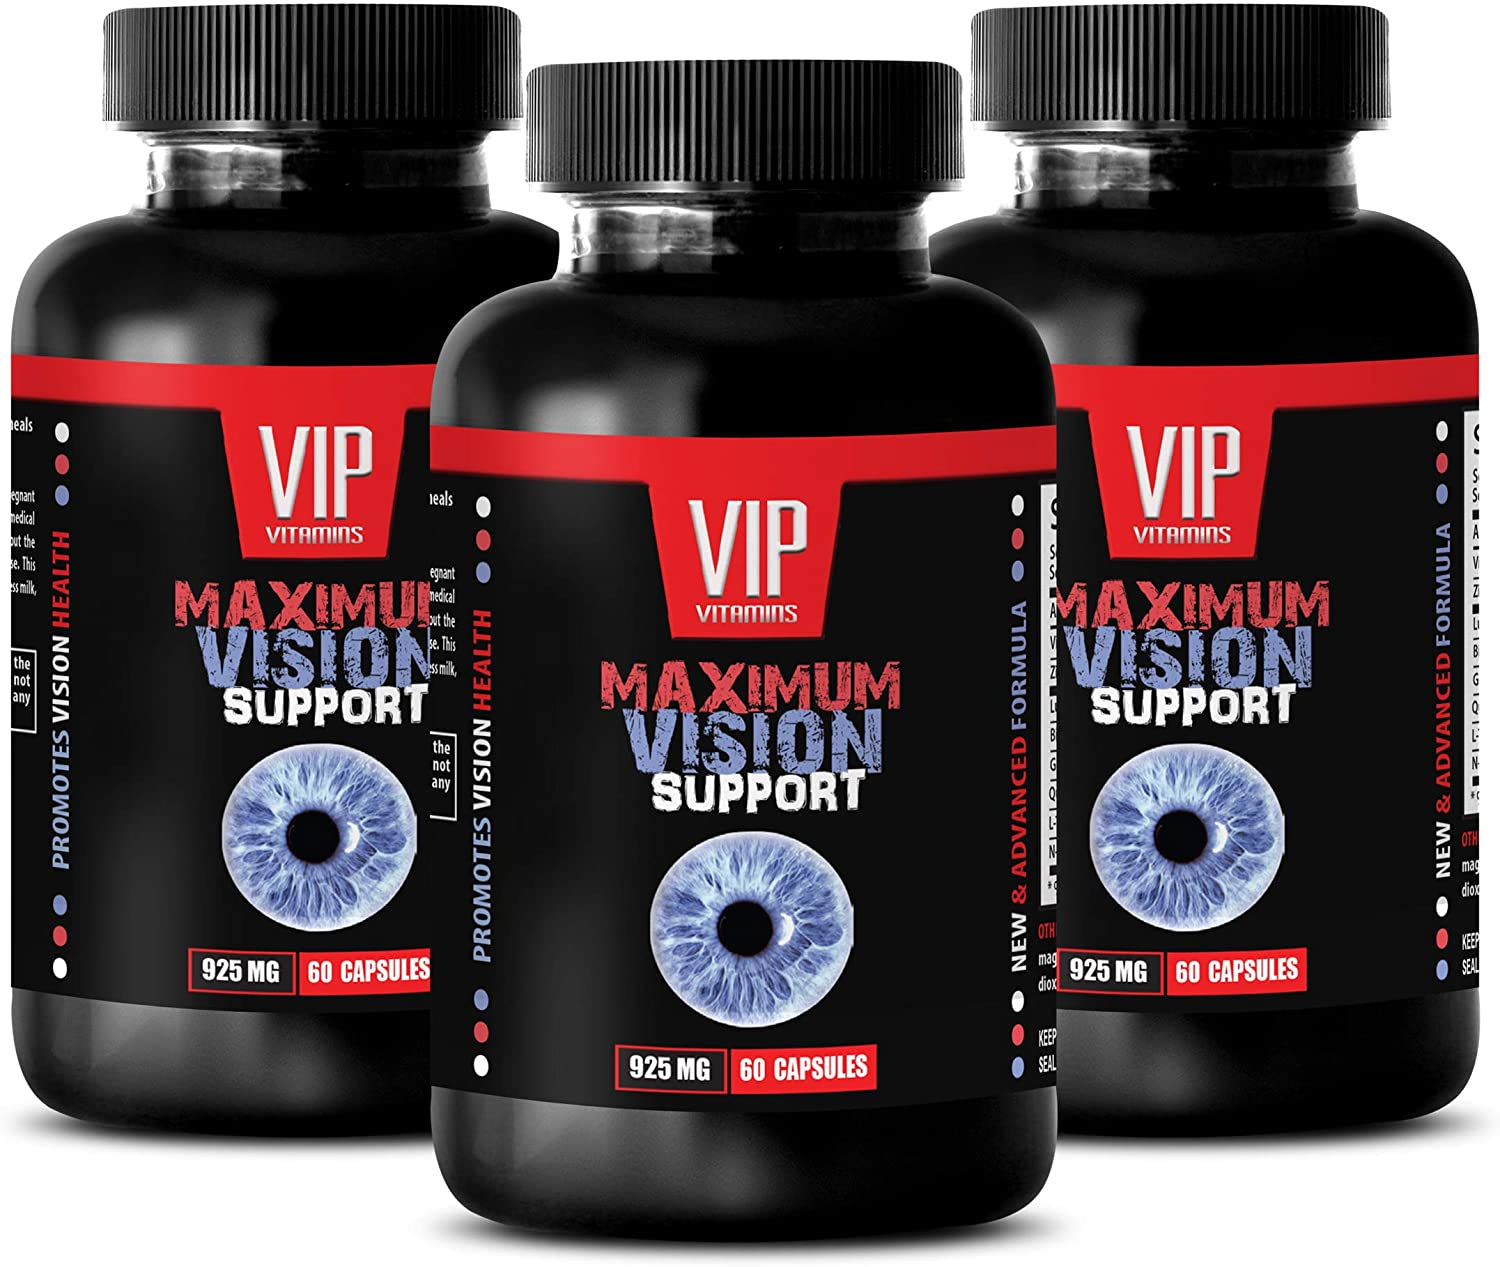 Vision Support Eye Formula - Maximum Vision Support - quercetin Plus Vitamin - 3 Bottle 180 Capsules